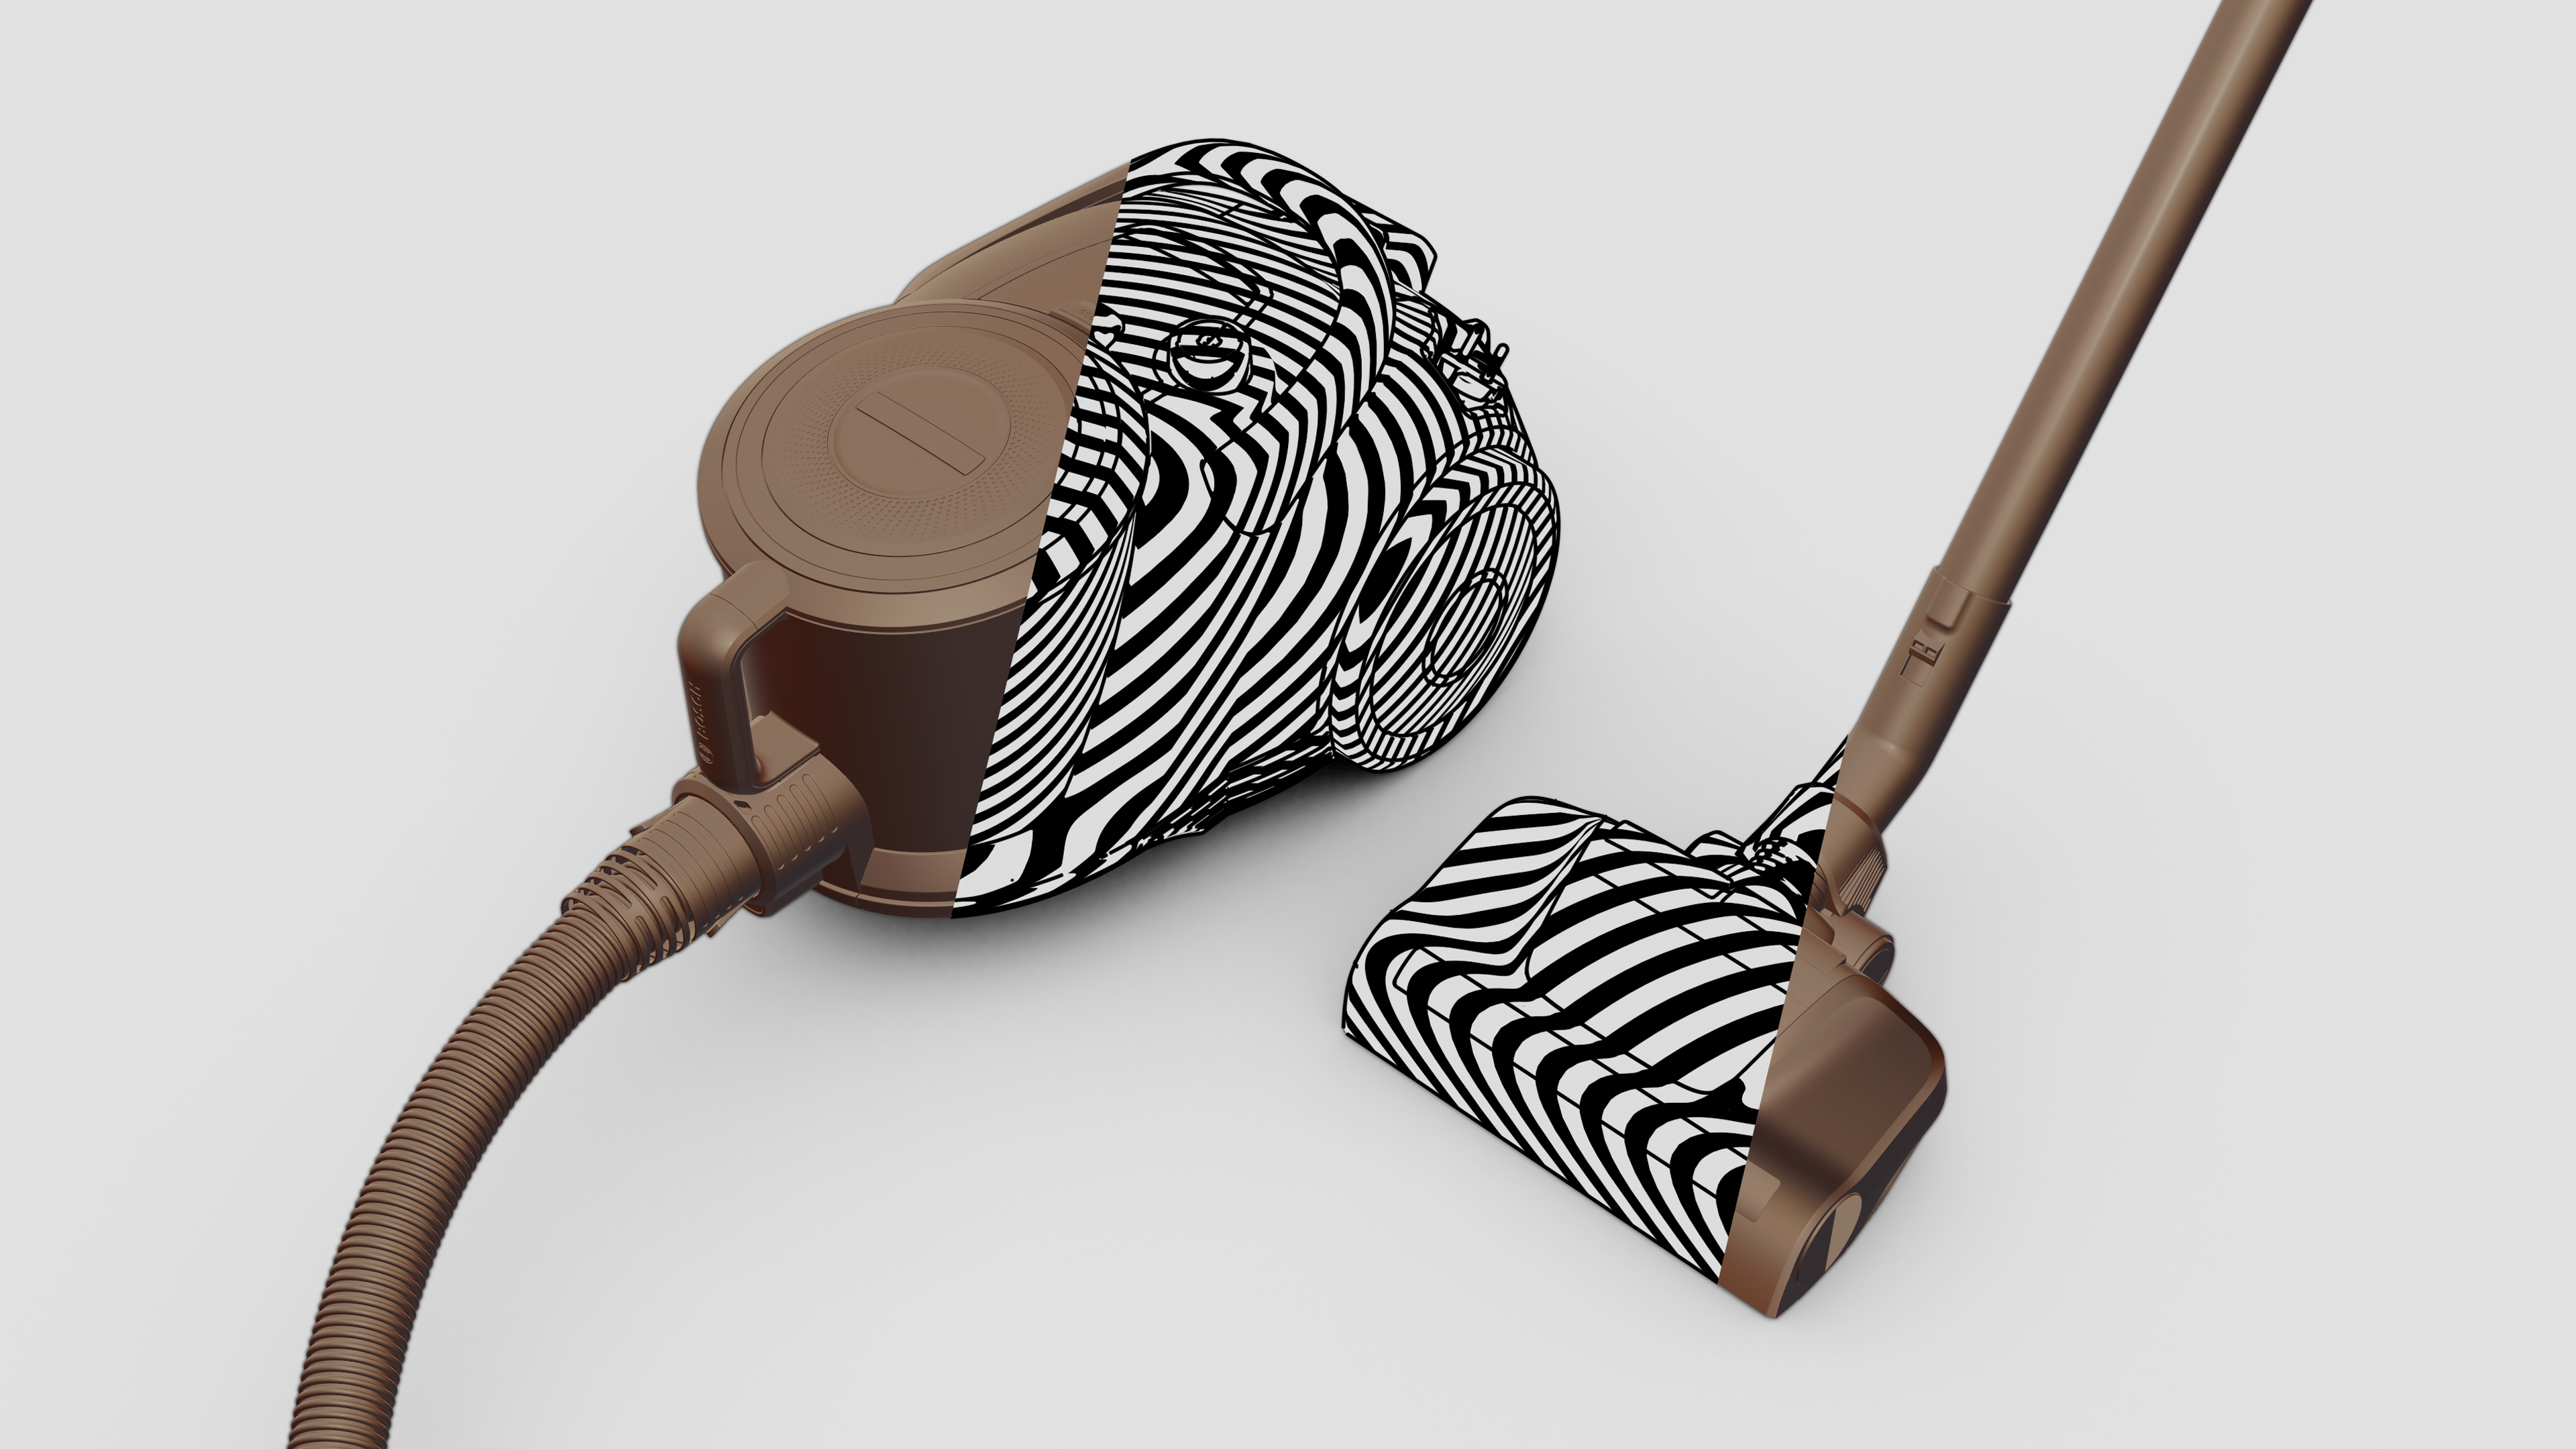 half clay half zebra view of a vacuum cleaner on grey background